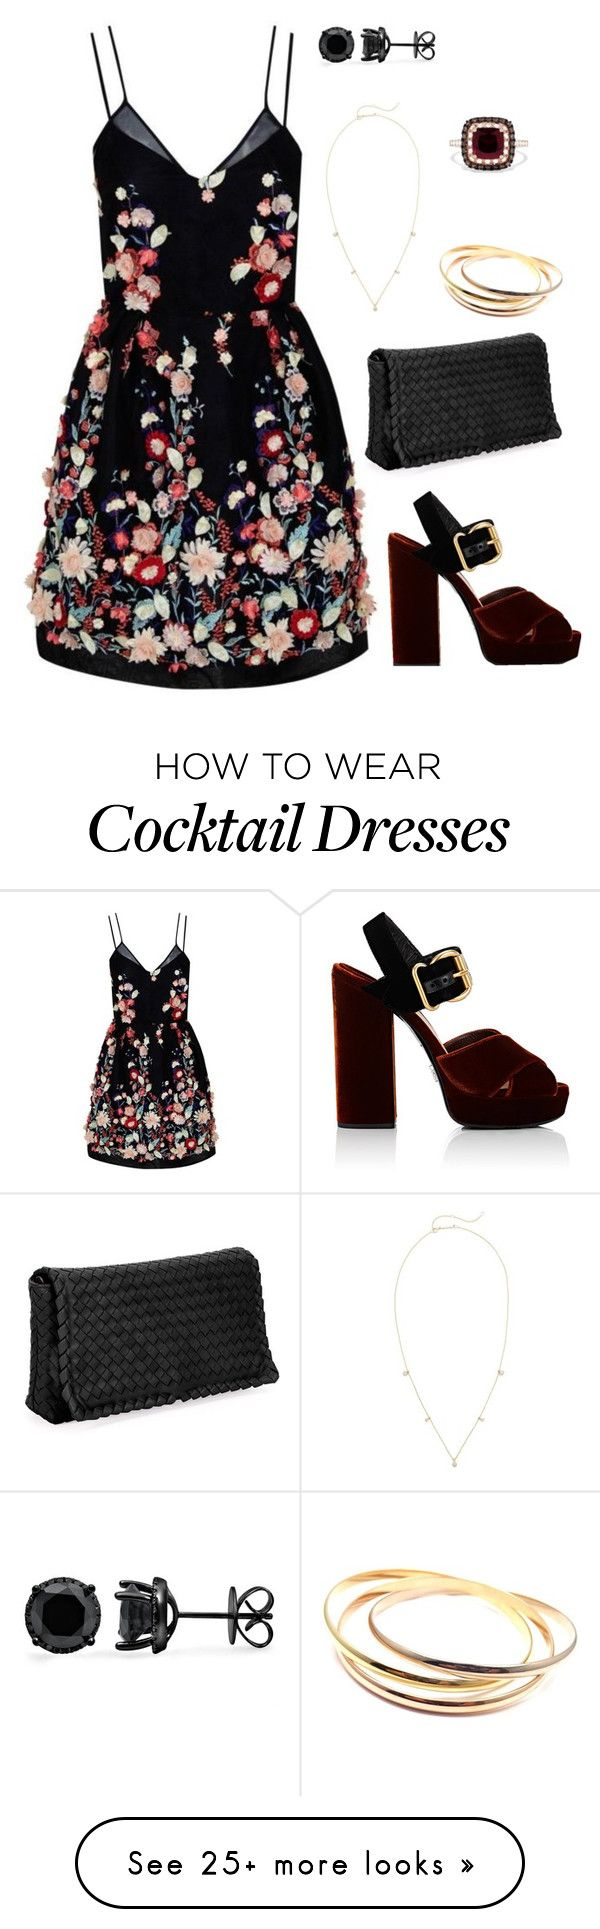 """Cocktails"" by hrebecca73 on Polyvore featuring The 2nd Skin Co., Bottega Veneta, Prada, Effy Jewelry, Cartier and Zoë Chicco"